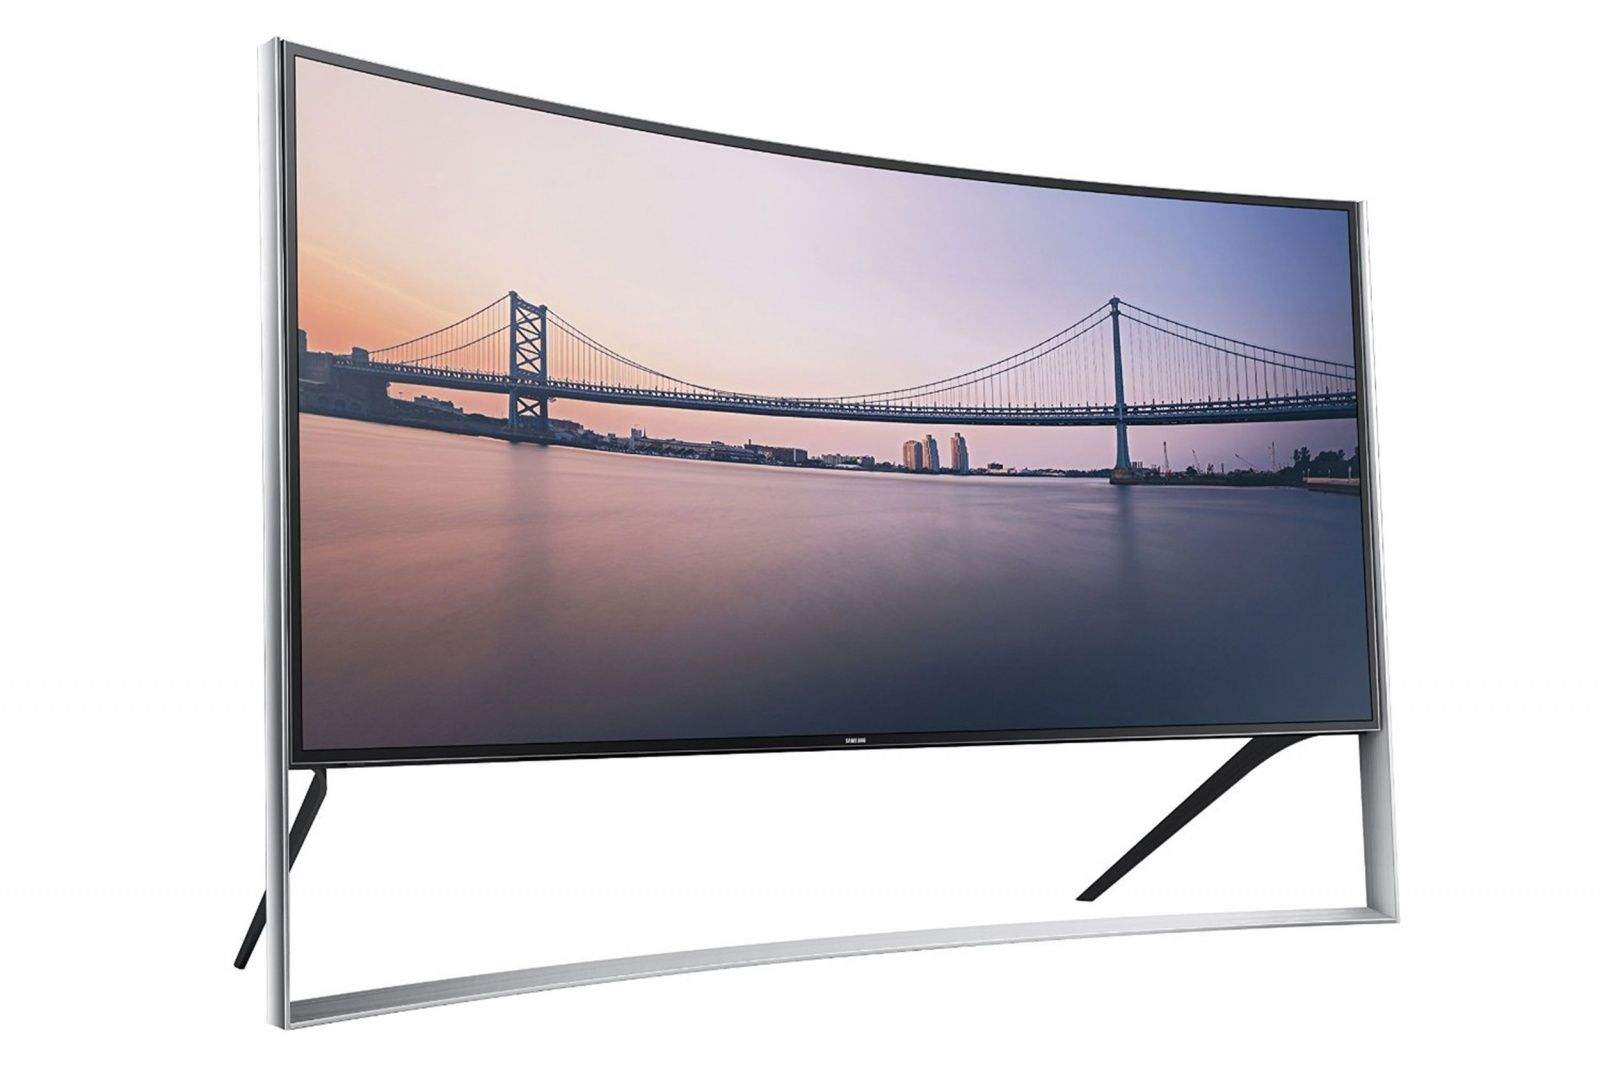 Screen grab of Samsung UN105S9 Curved 105-Inch 4K Ultra HD 120Hz 3D Smart LED TV: Amazon